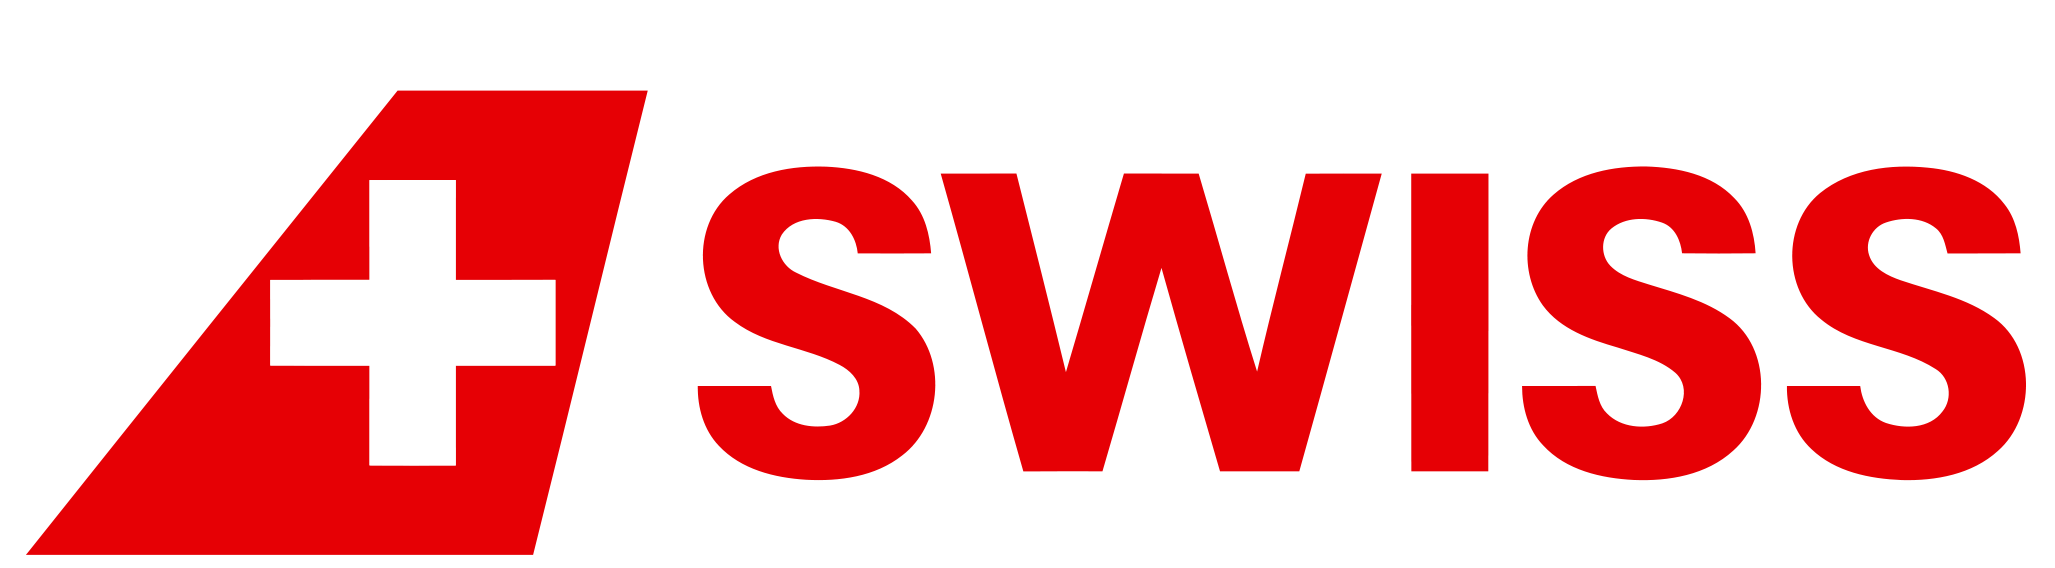 Swiss International Airlines (LX)